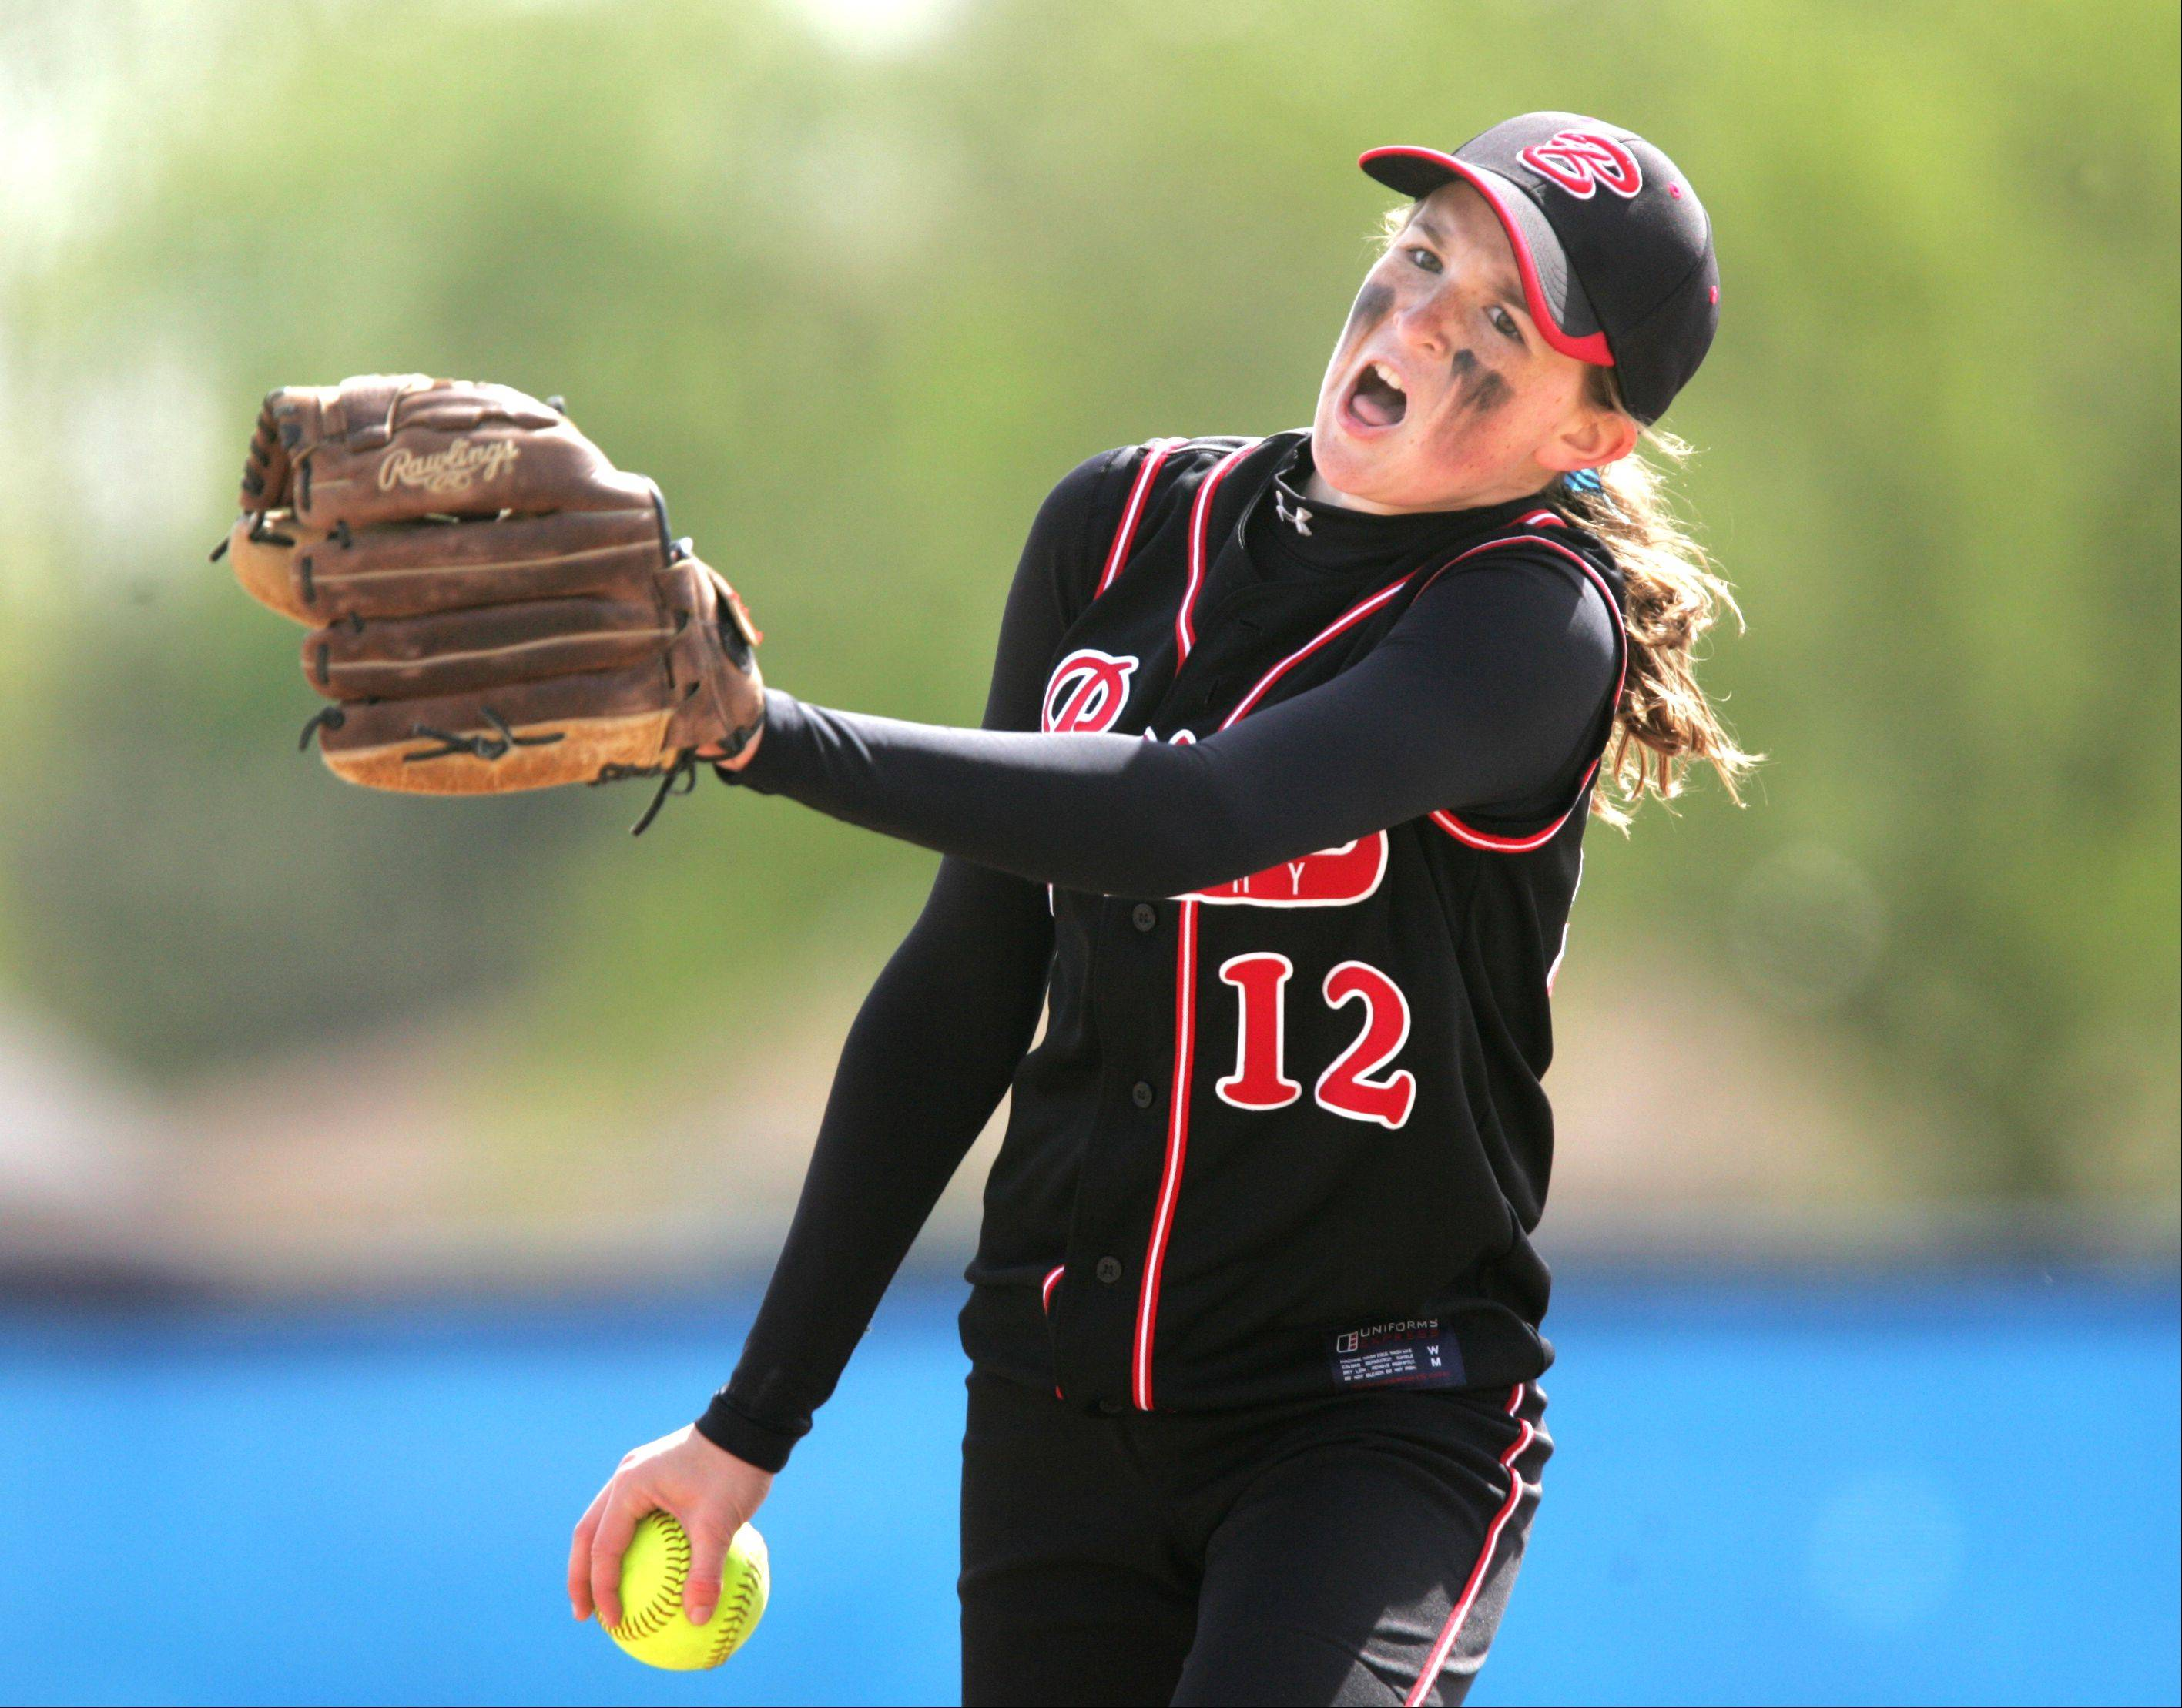 Benet pitcher Molly Moran has a dislocated knee is expected to be out 4-6 weeks.